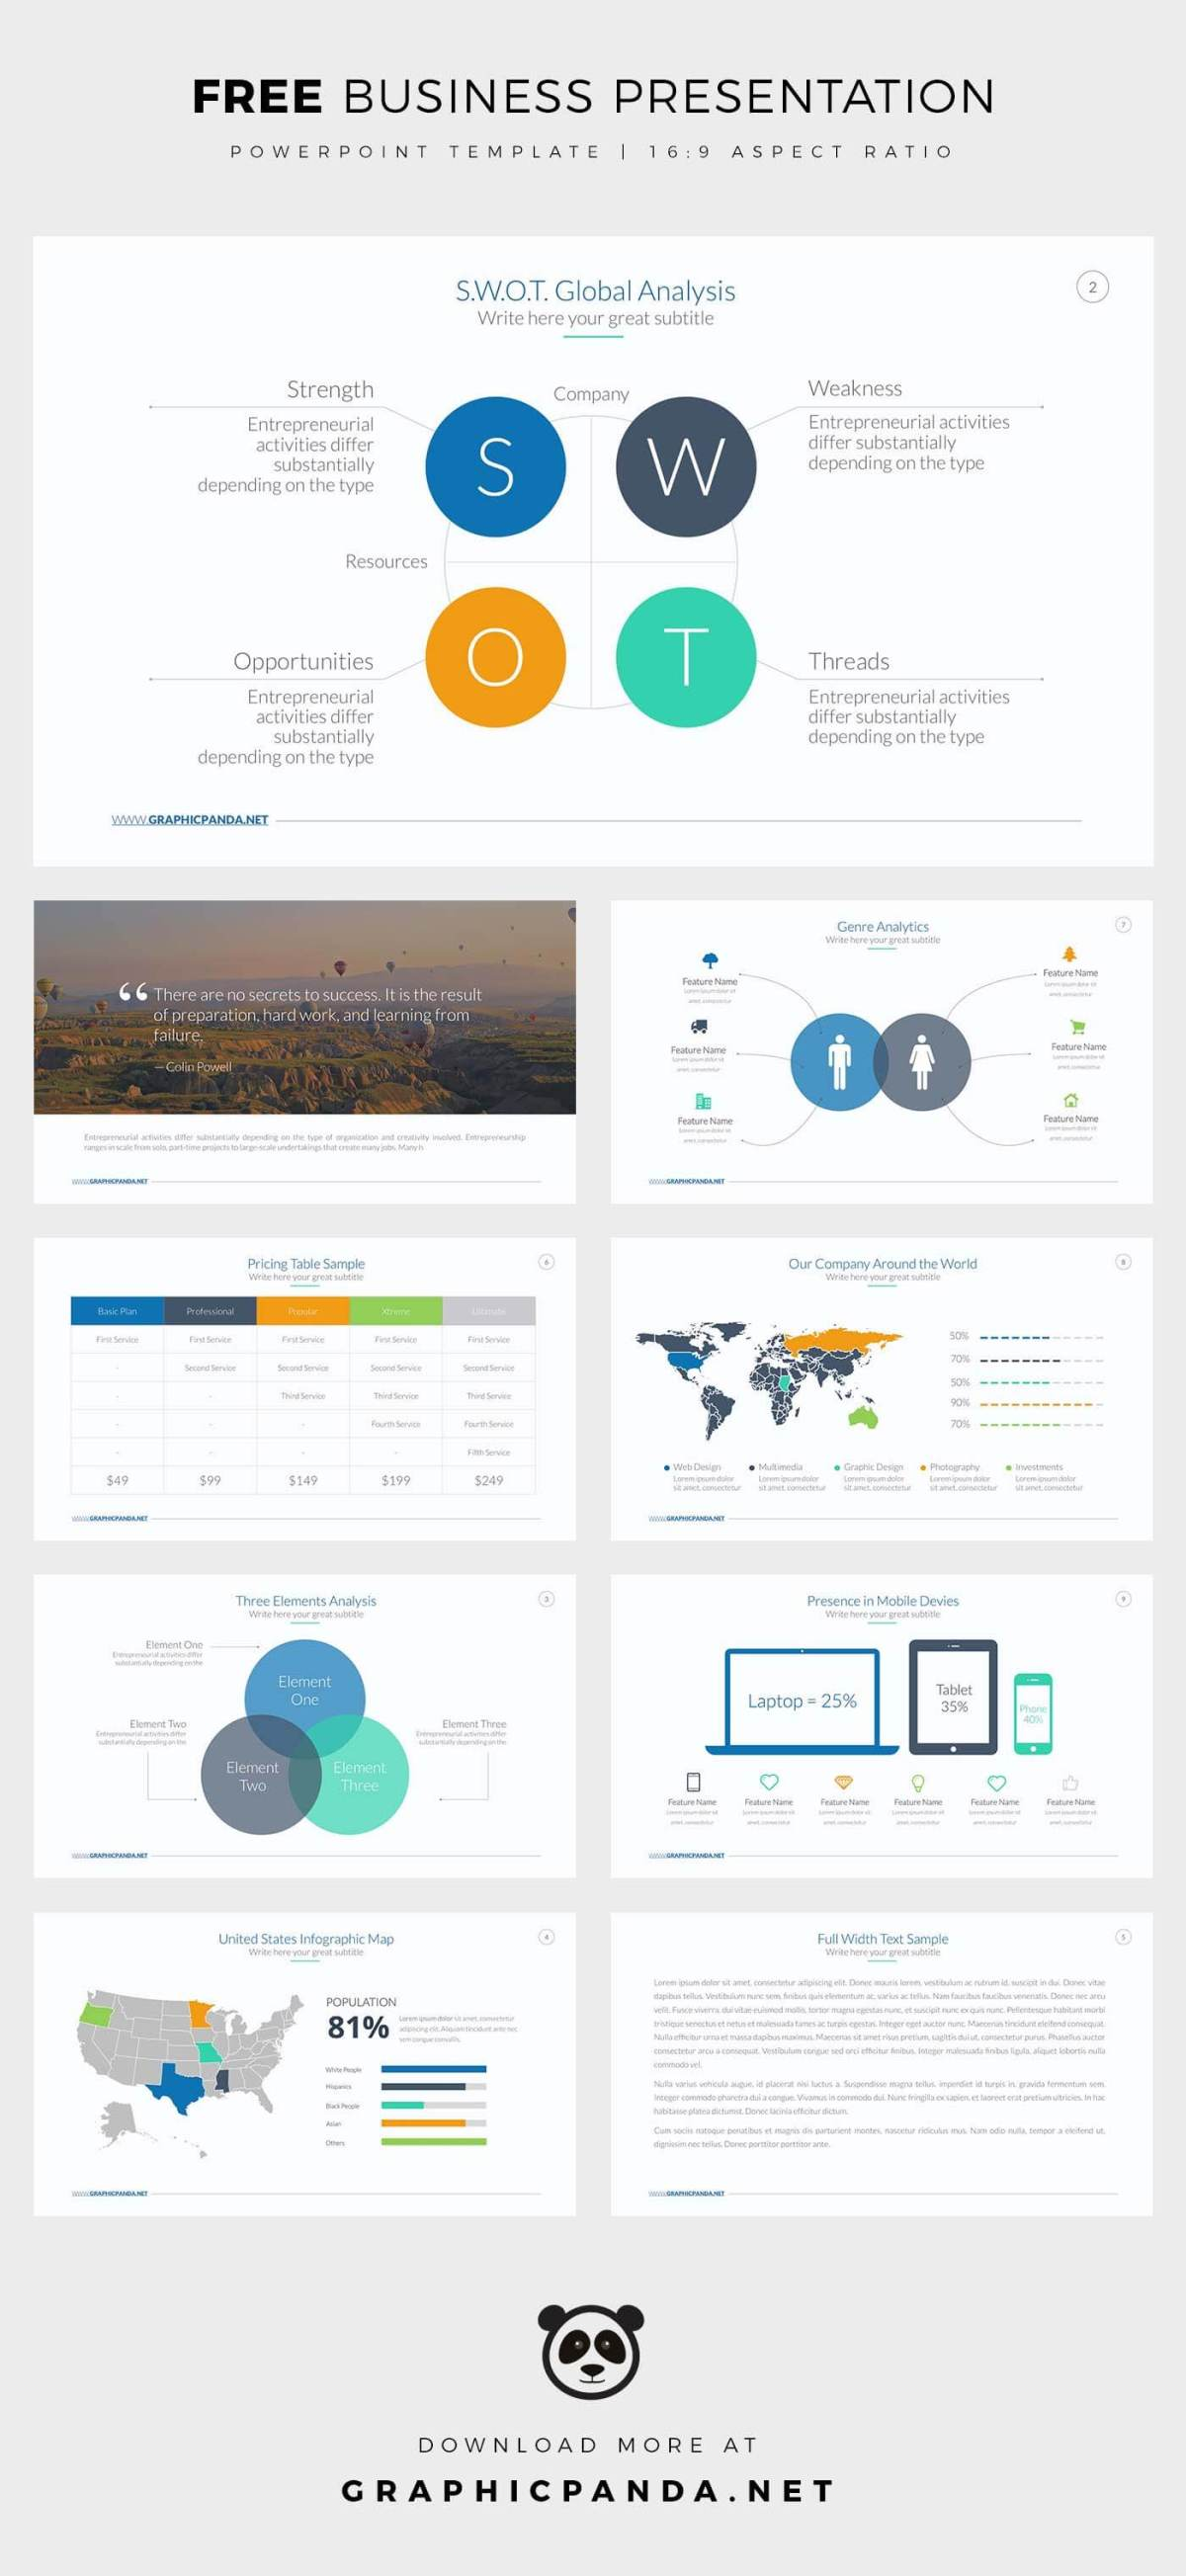 Free business powerpoint templates professional and easy to edit free business powerpoint template toneelgroepblik Gallery